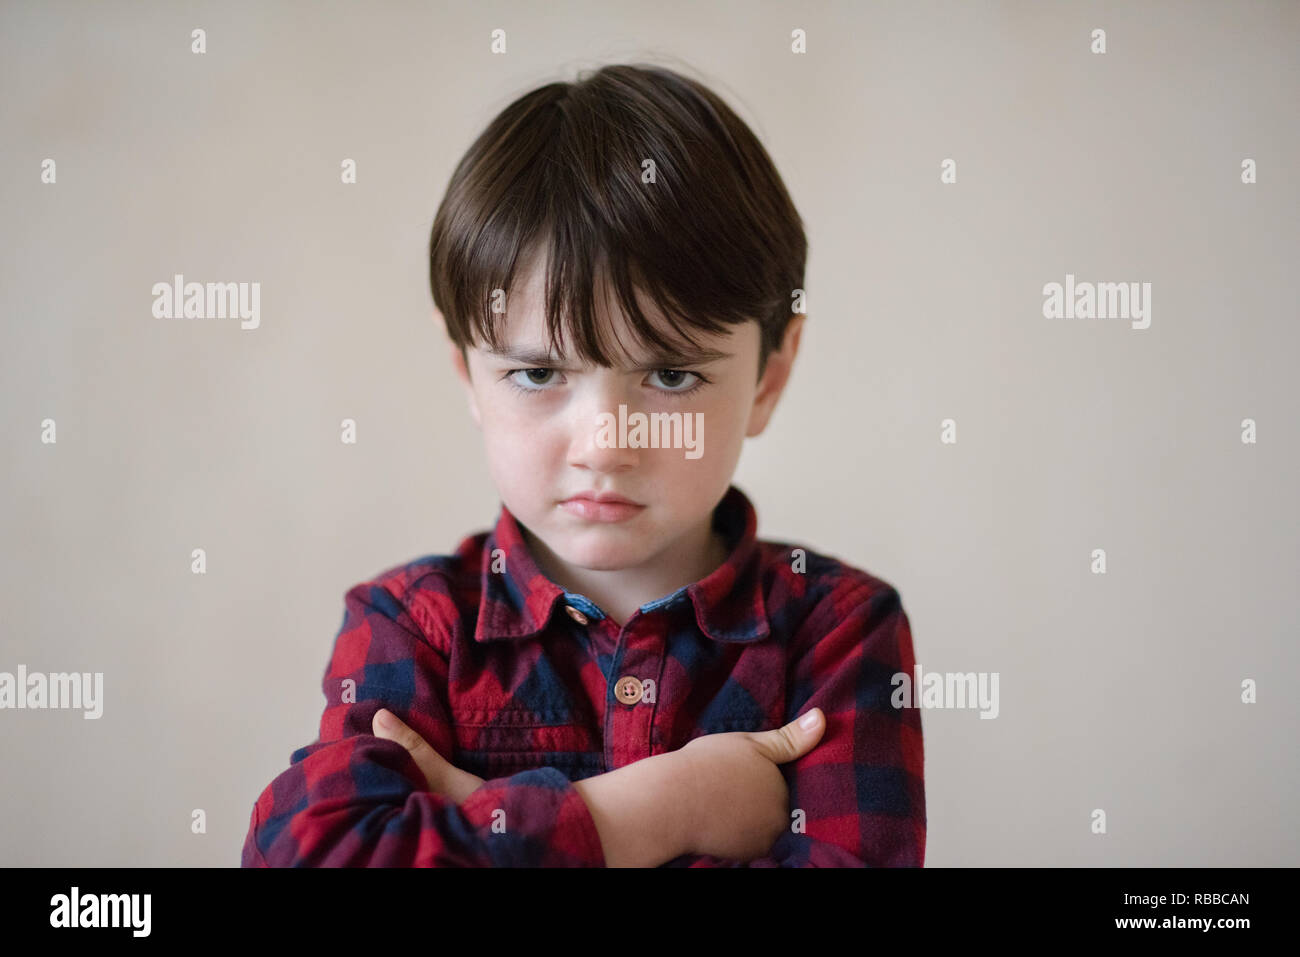 portrait of cute small angry upset caucasian kid in plaid shirt - Stock Image